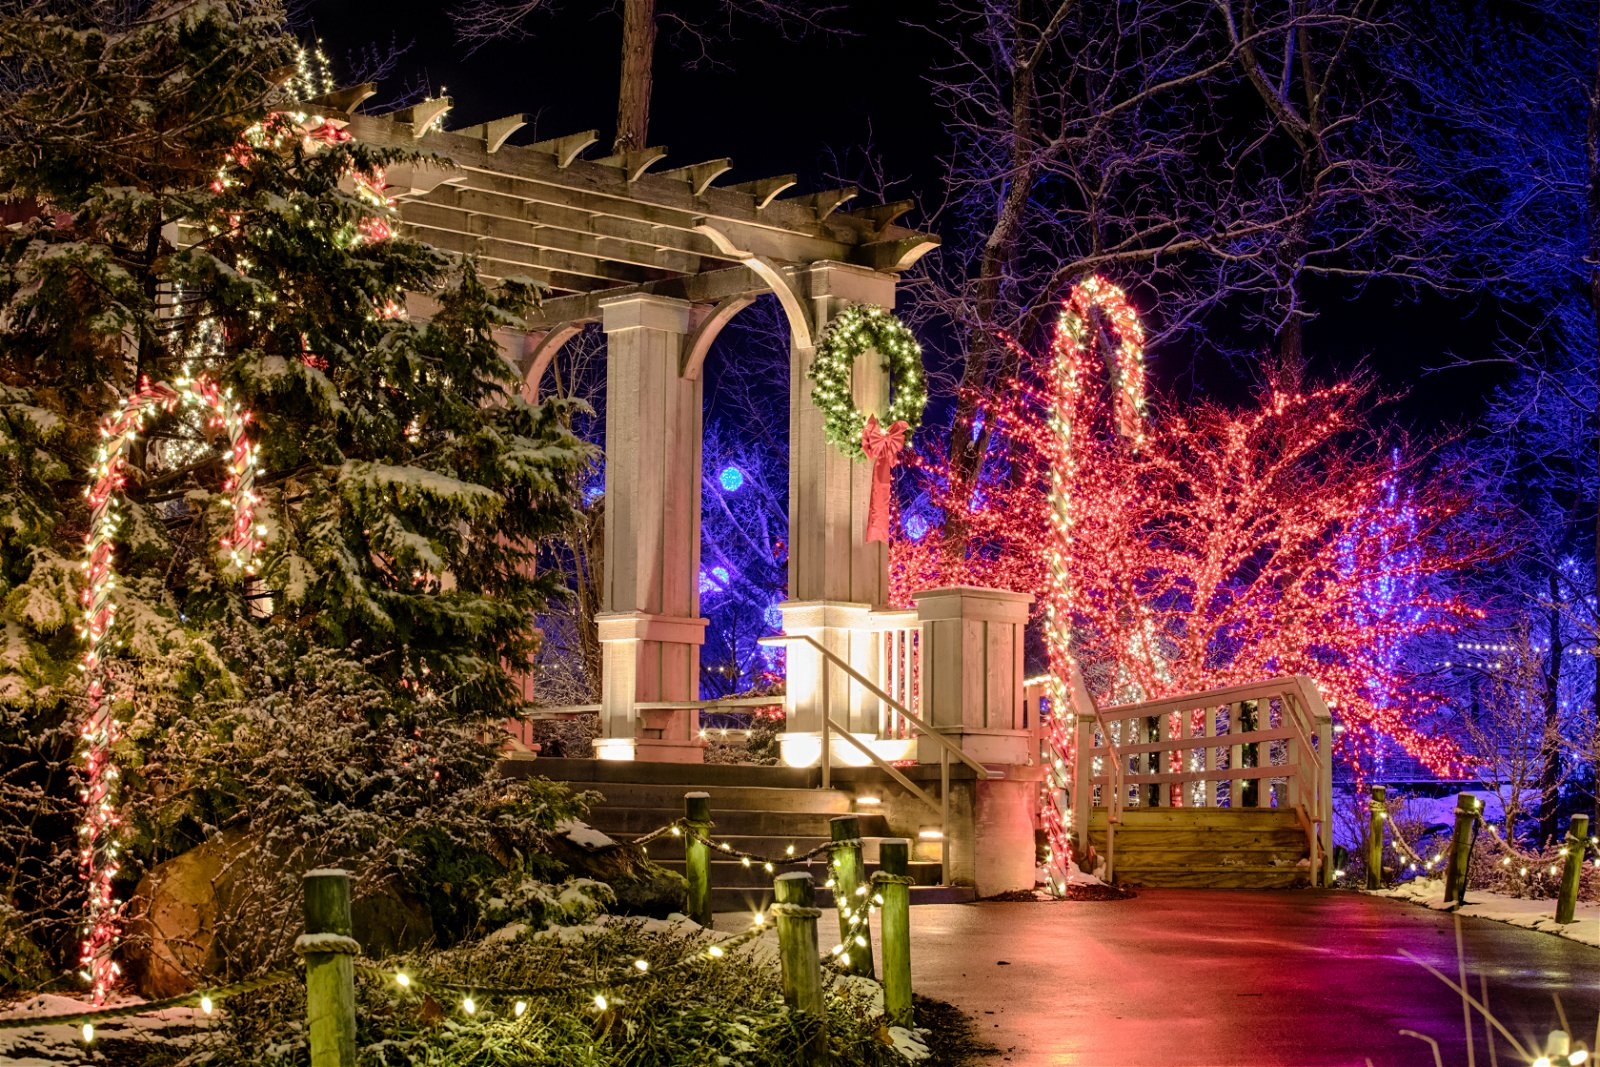 ChristmasTown Lights at the Creation Museum